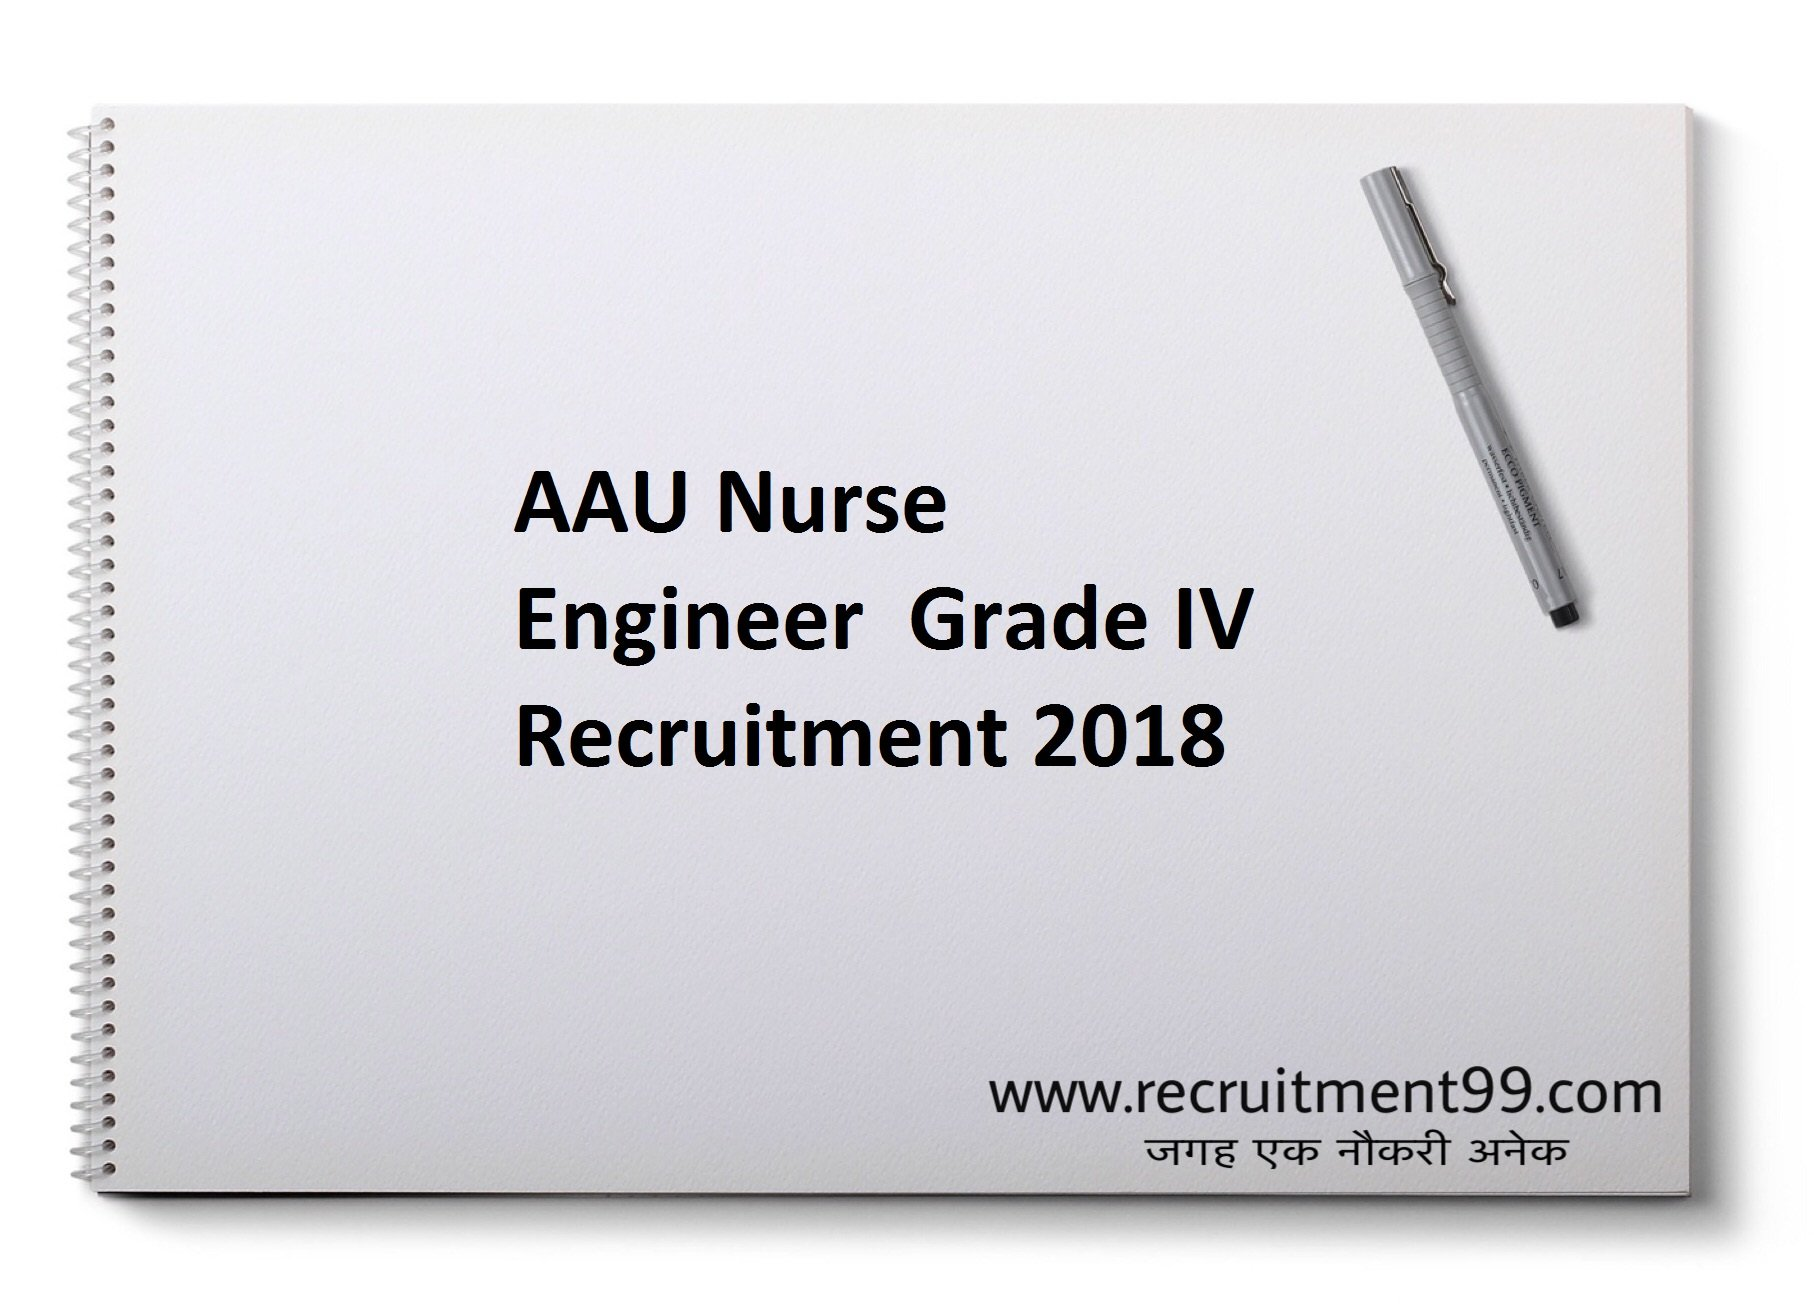 AAU Nurse Engineer Grade IV Recruitment Admit Card Result 2018